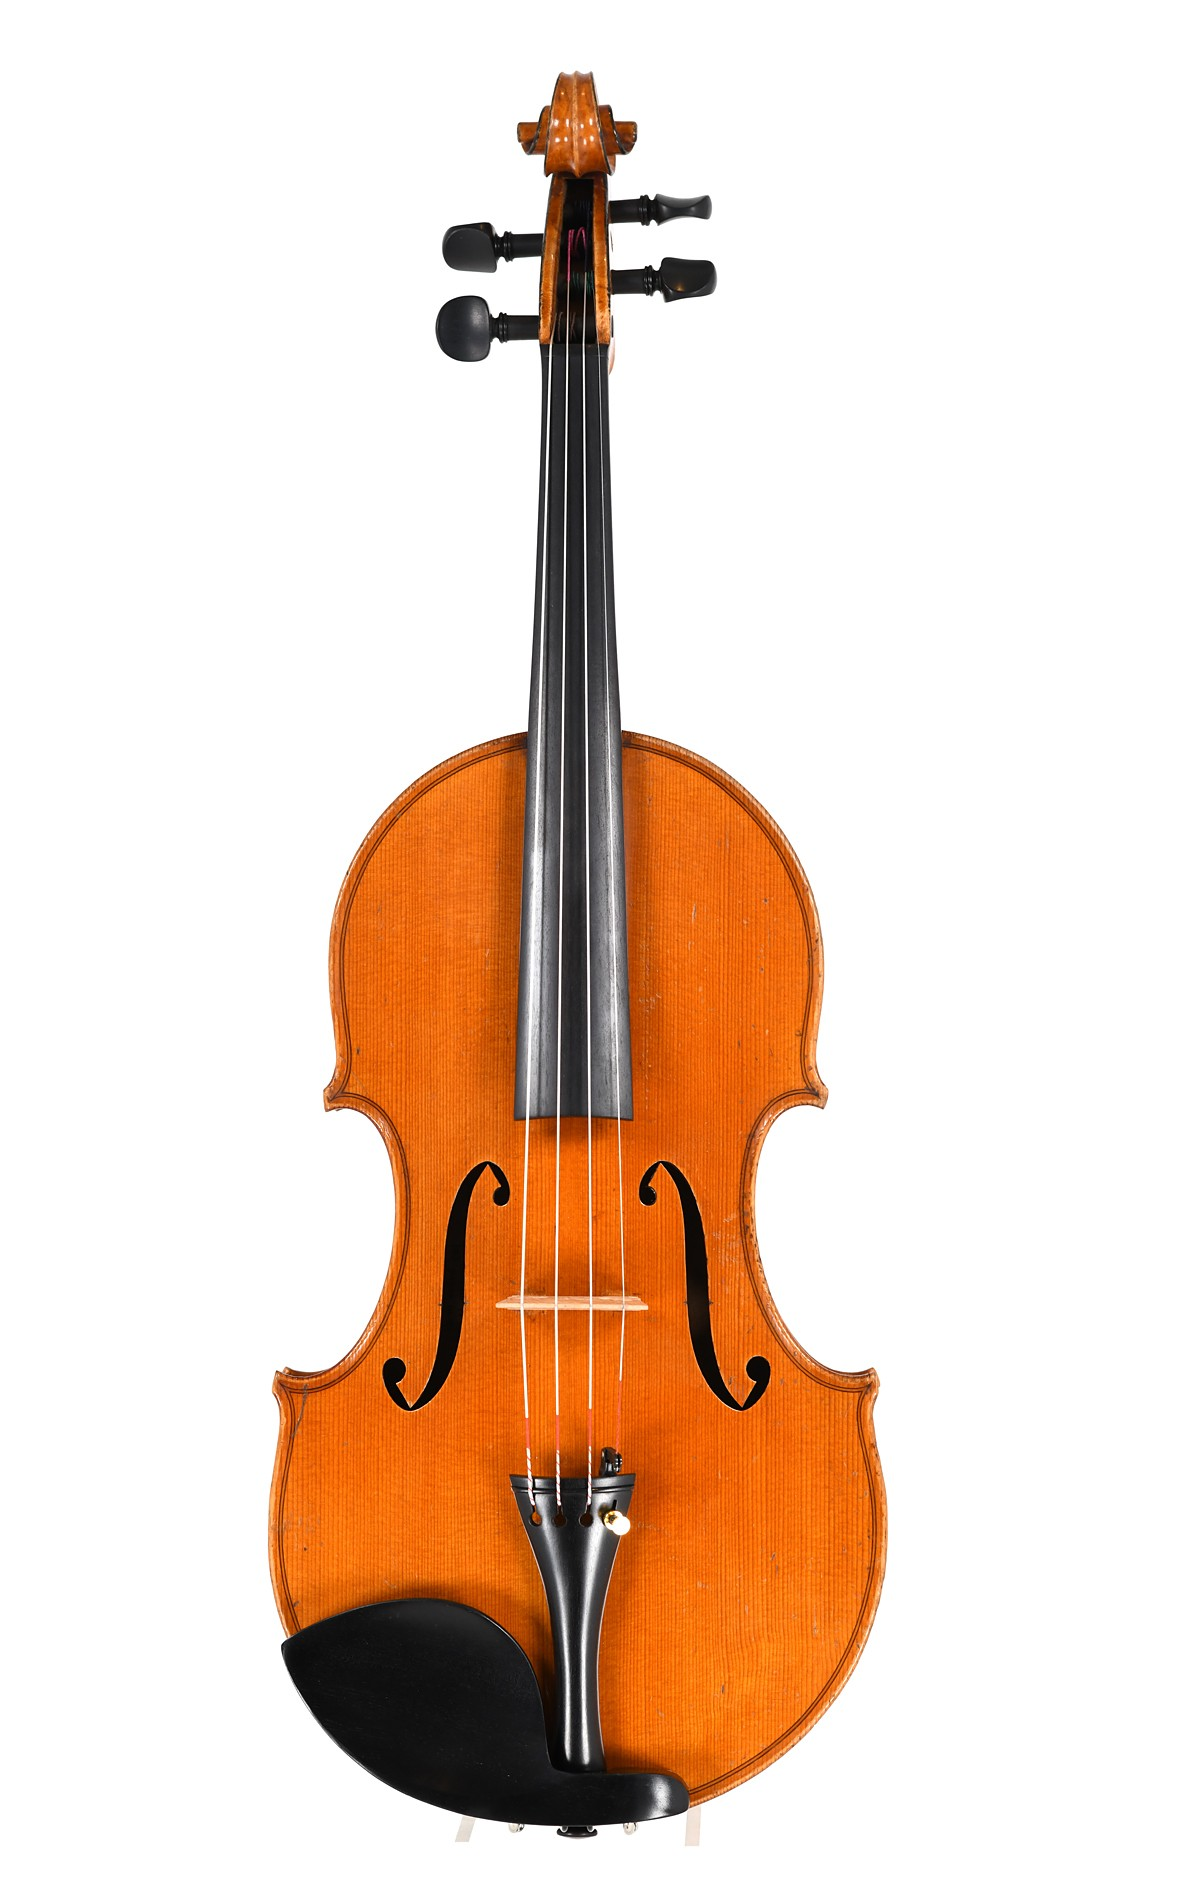 Richelme viola, late 19th century - top view